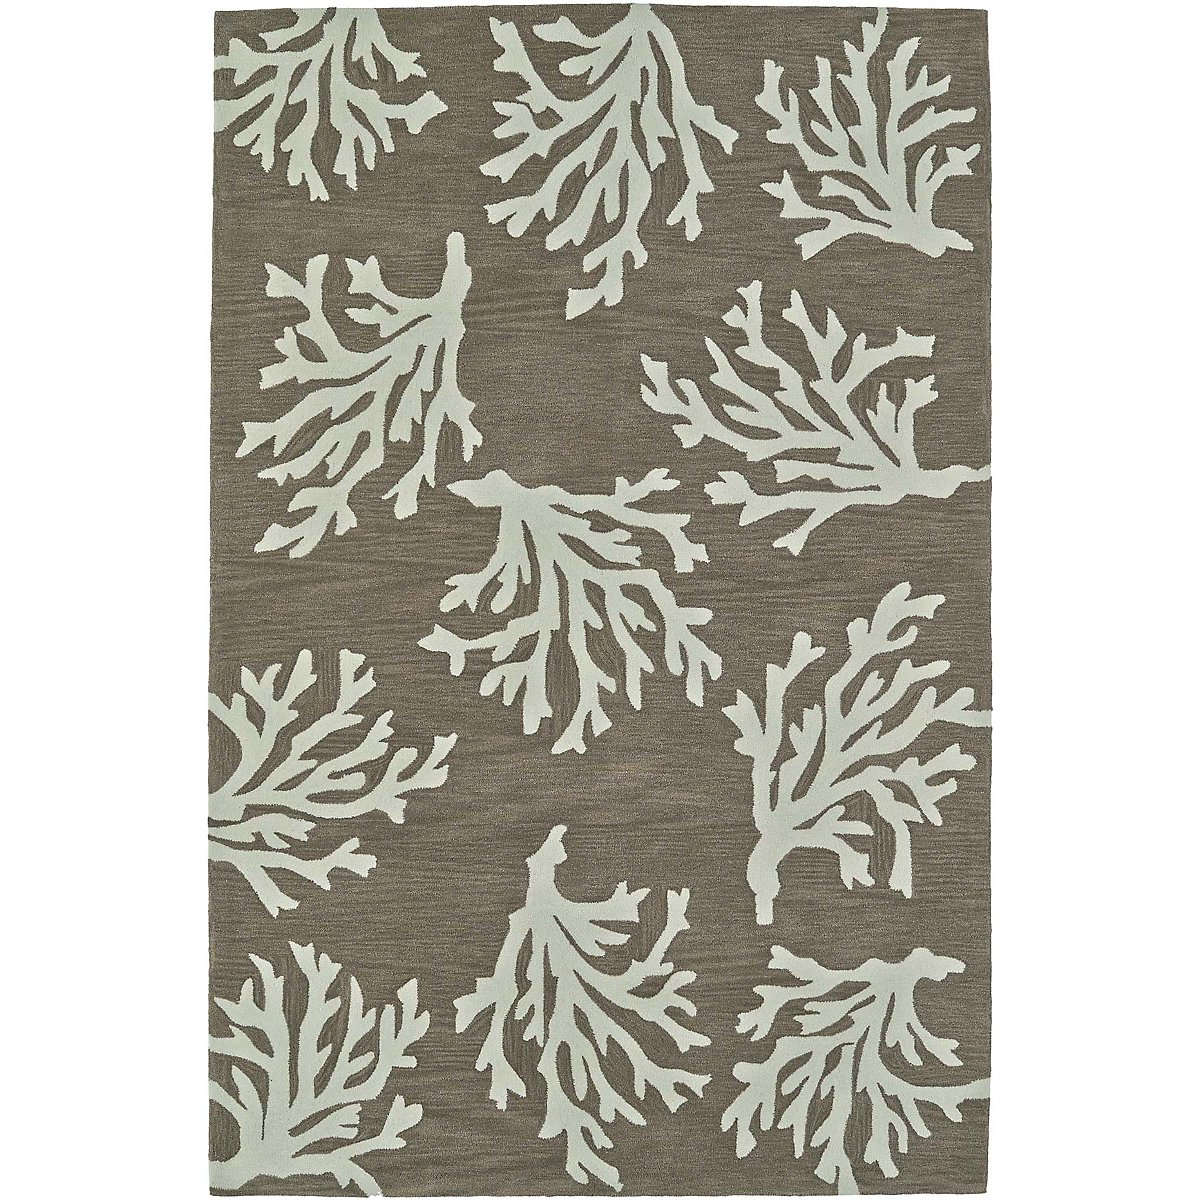 Seaside Khaki 8X10 Area Rug